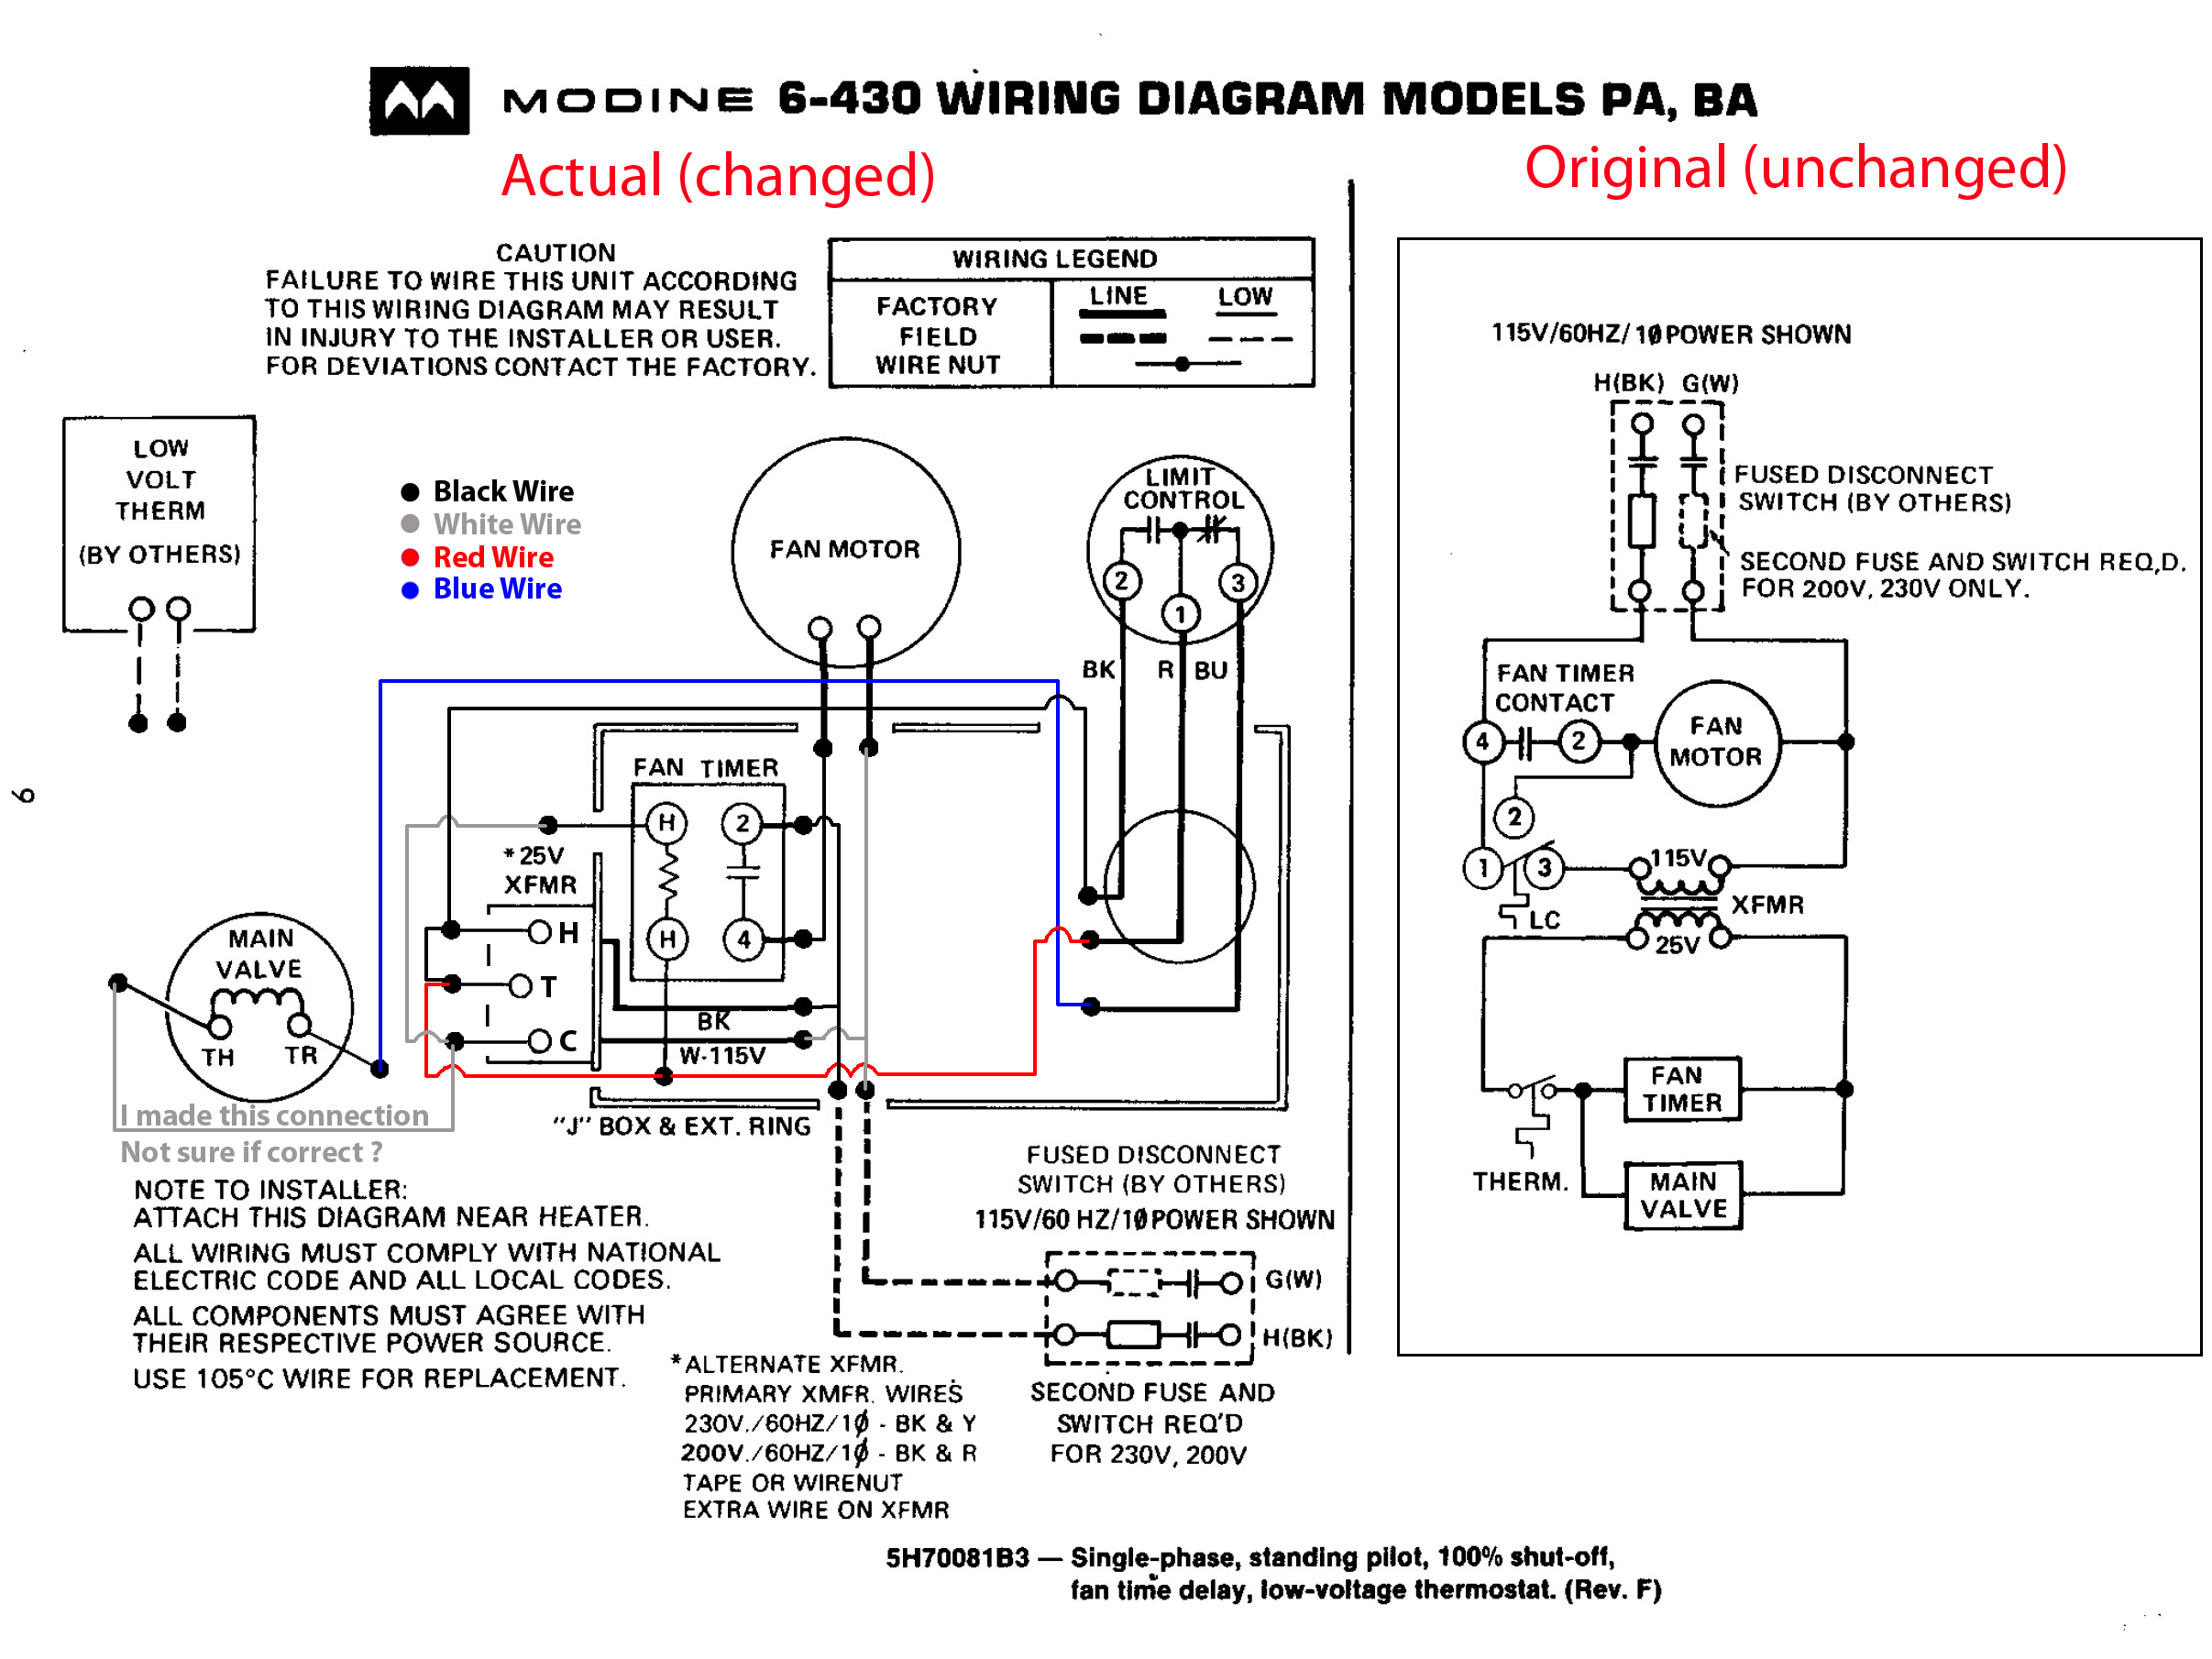 strongway electric cable hoist wiring diagram Collection-Modine Gas Heater Wiring Diagram New Beautiful Gas Heater Wiring Diagram Inspiration 10-i